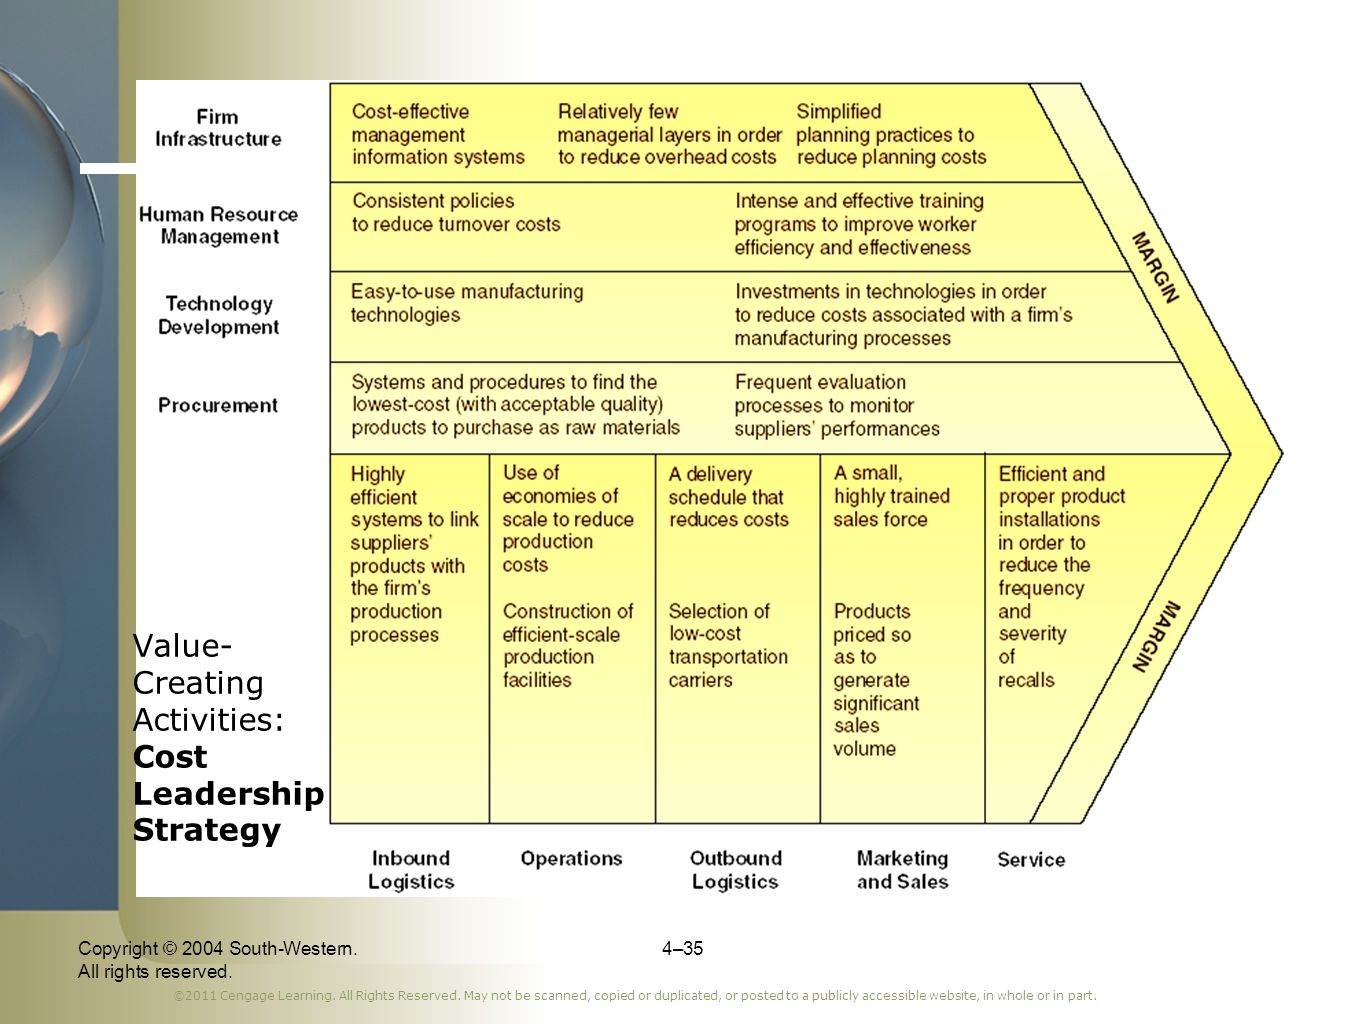 Value-Creating Activities: Cost Leadership Strategy